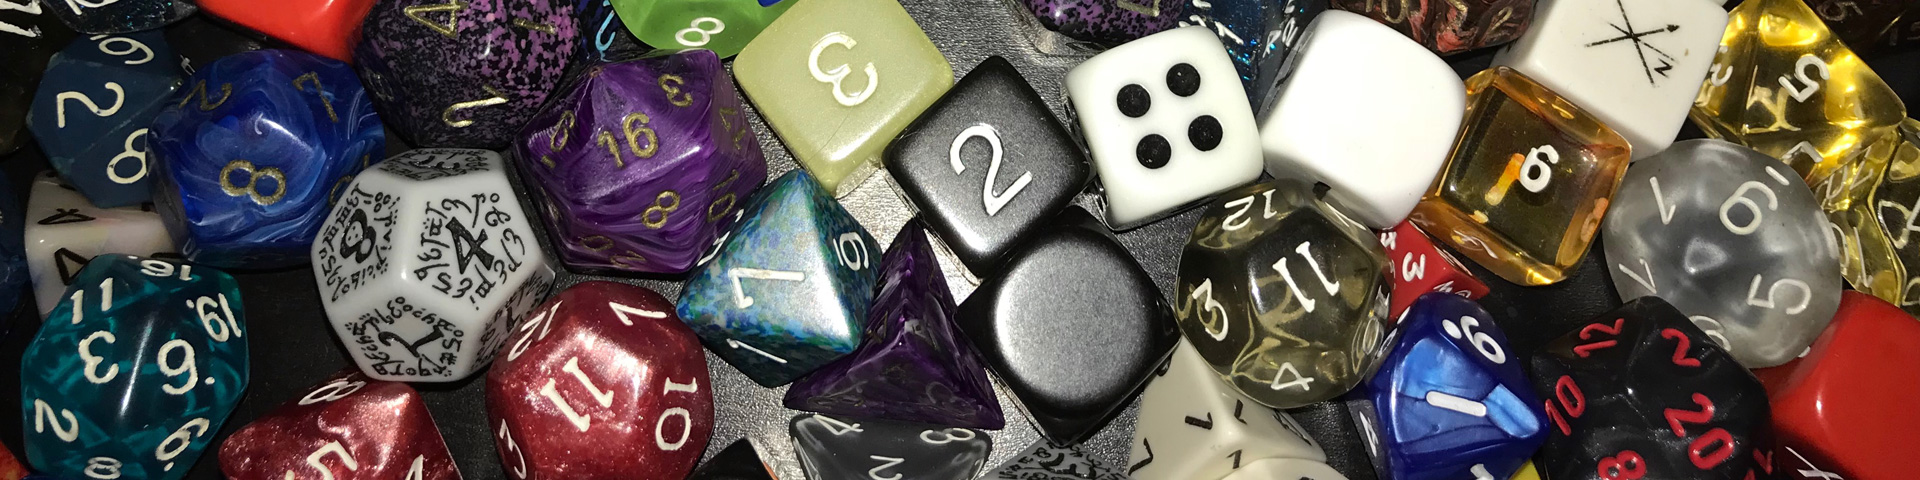 Dozens of polyhedral dice.